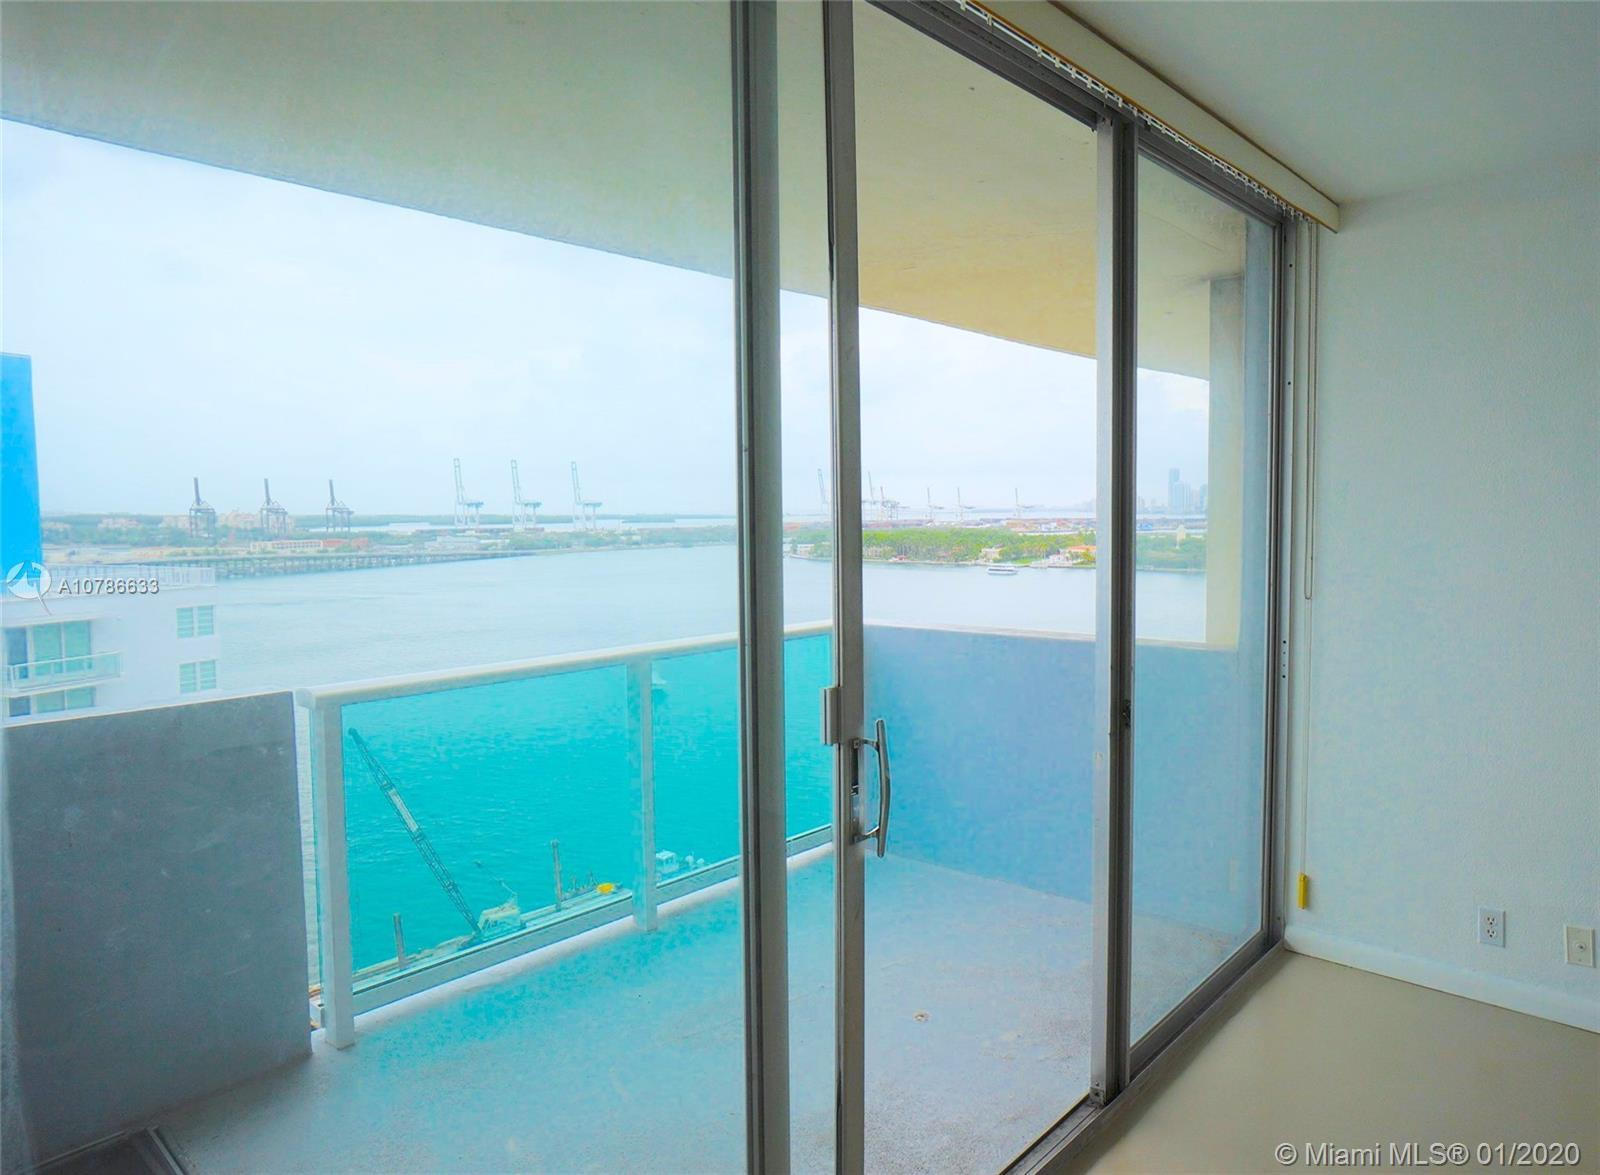 Incredible views from this penthouse unit in the Mirador South. This property has been completely an